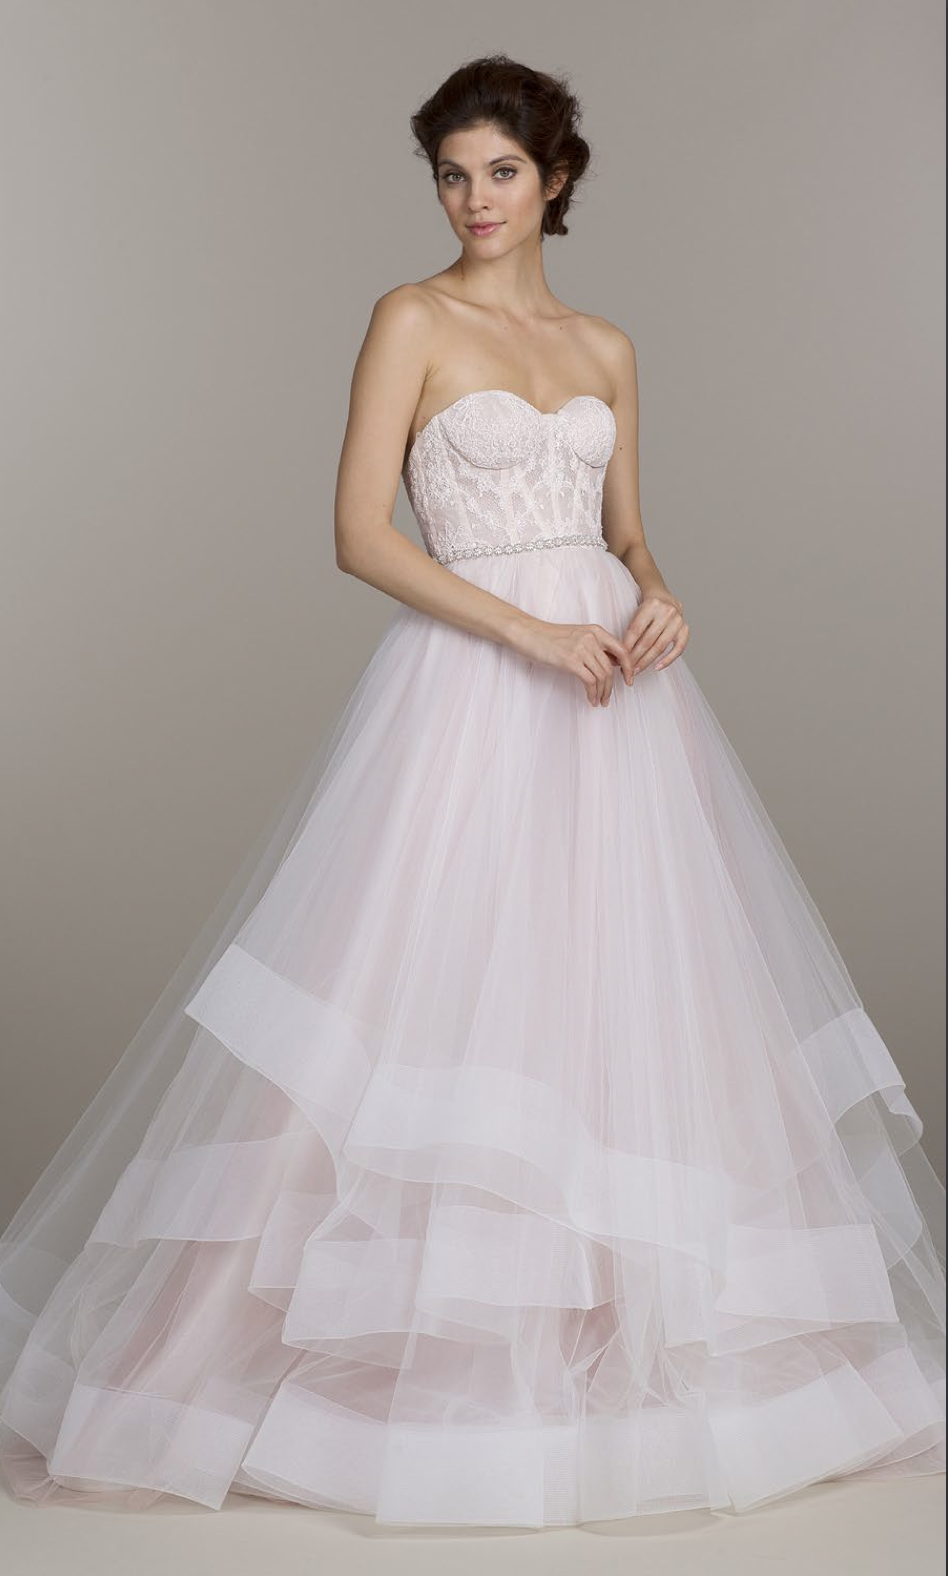 Sherbet tulle bridal ball gown with strapless corset